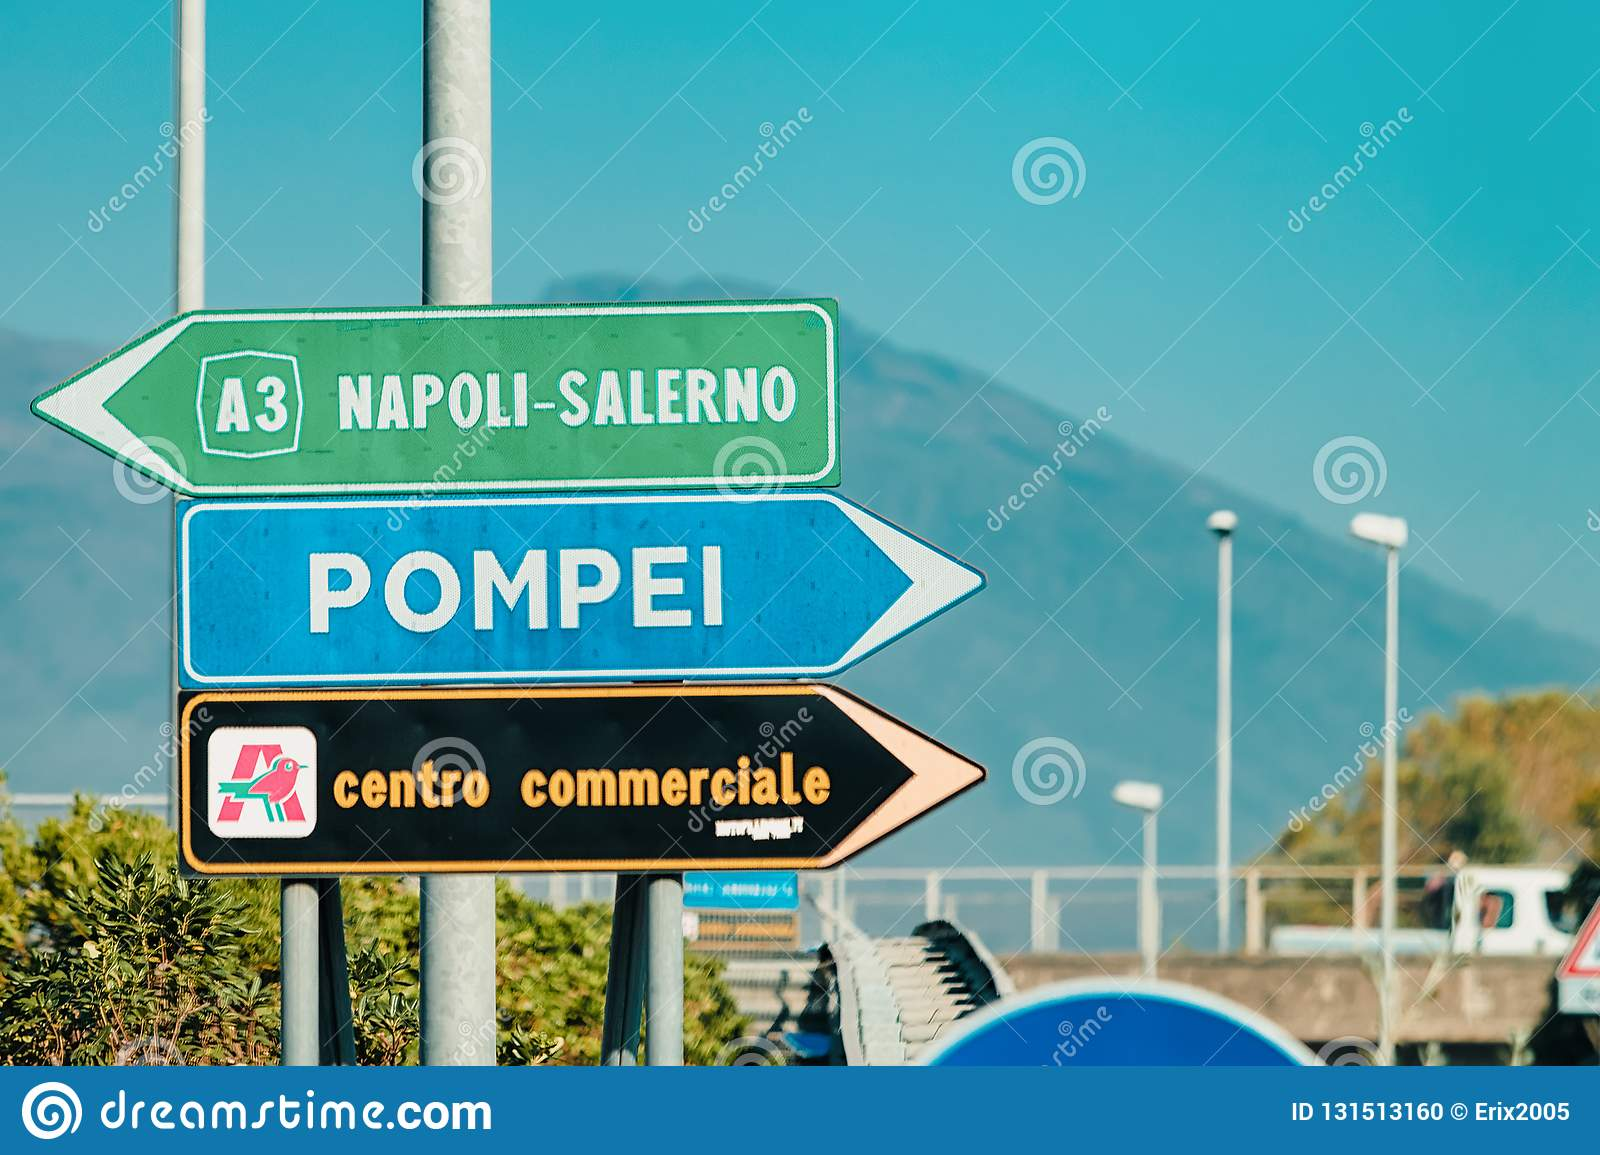 Pompei and Napoli Salerno Traffic signs on the road in Italy